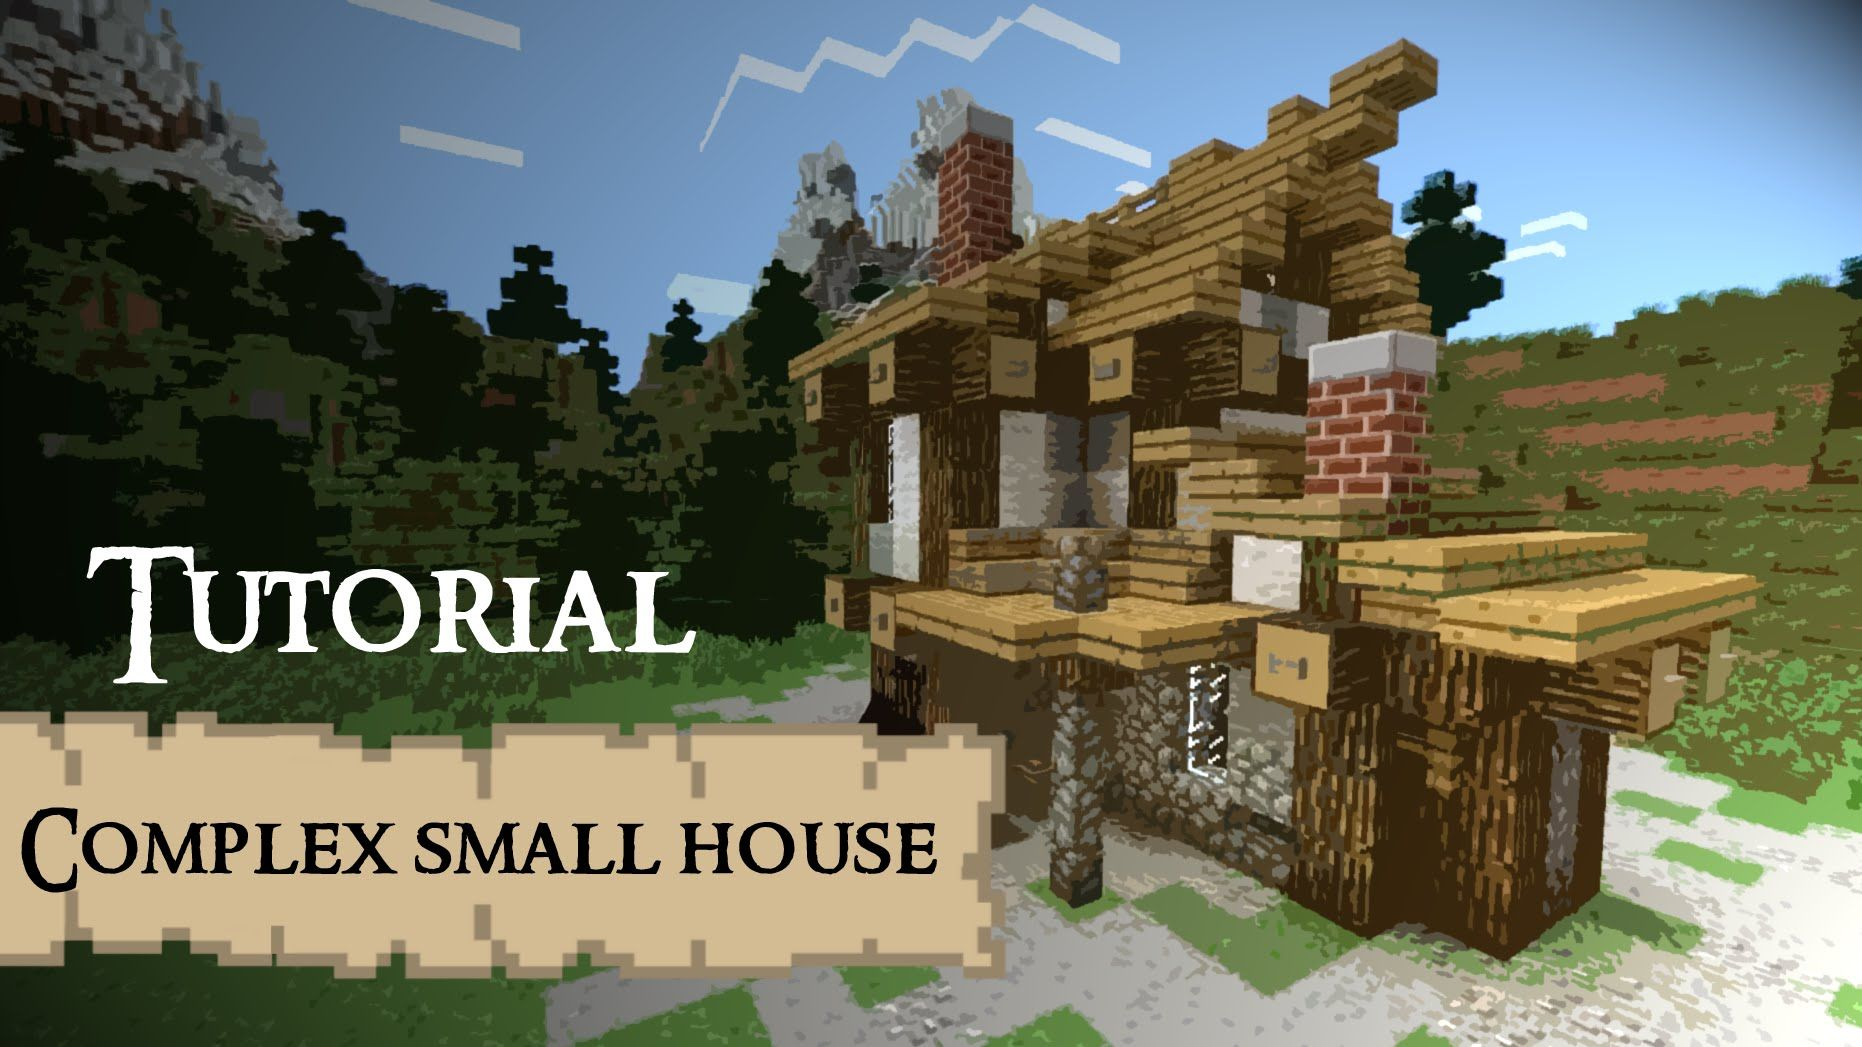 complex small house medieval minecraft tutorial minecraft building pinterest minecraft. Black Bedroom Furniture Sets. Home Design Ideas